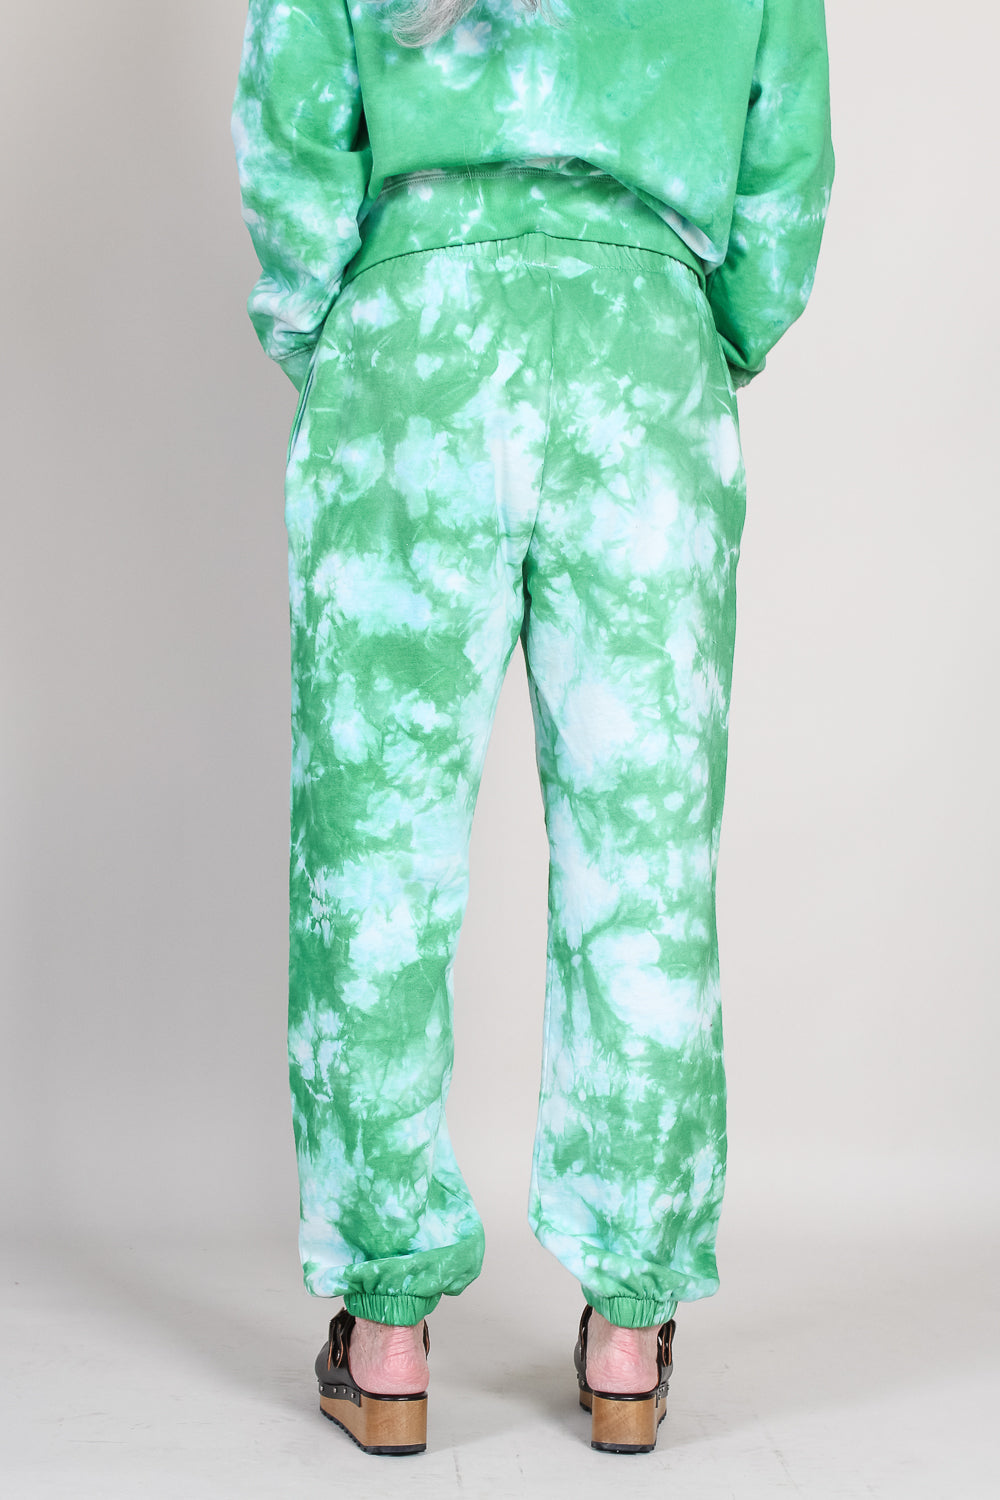 Sweatpants in Green/Pale Blue Tie Dye with Black Eyes